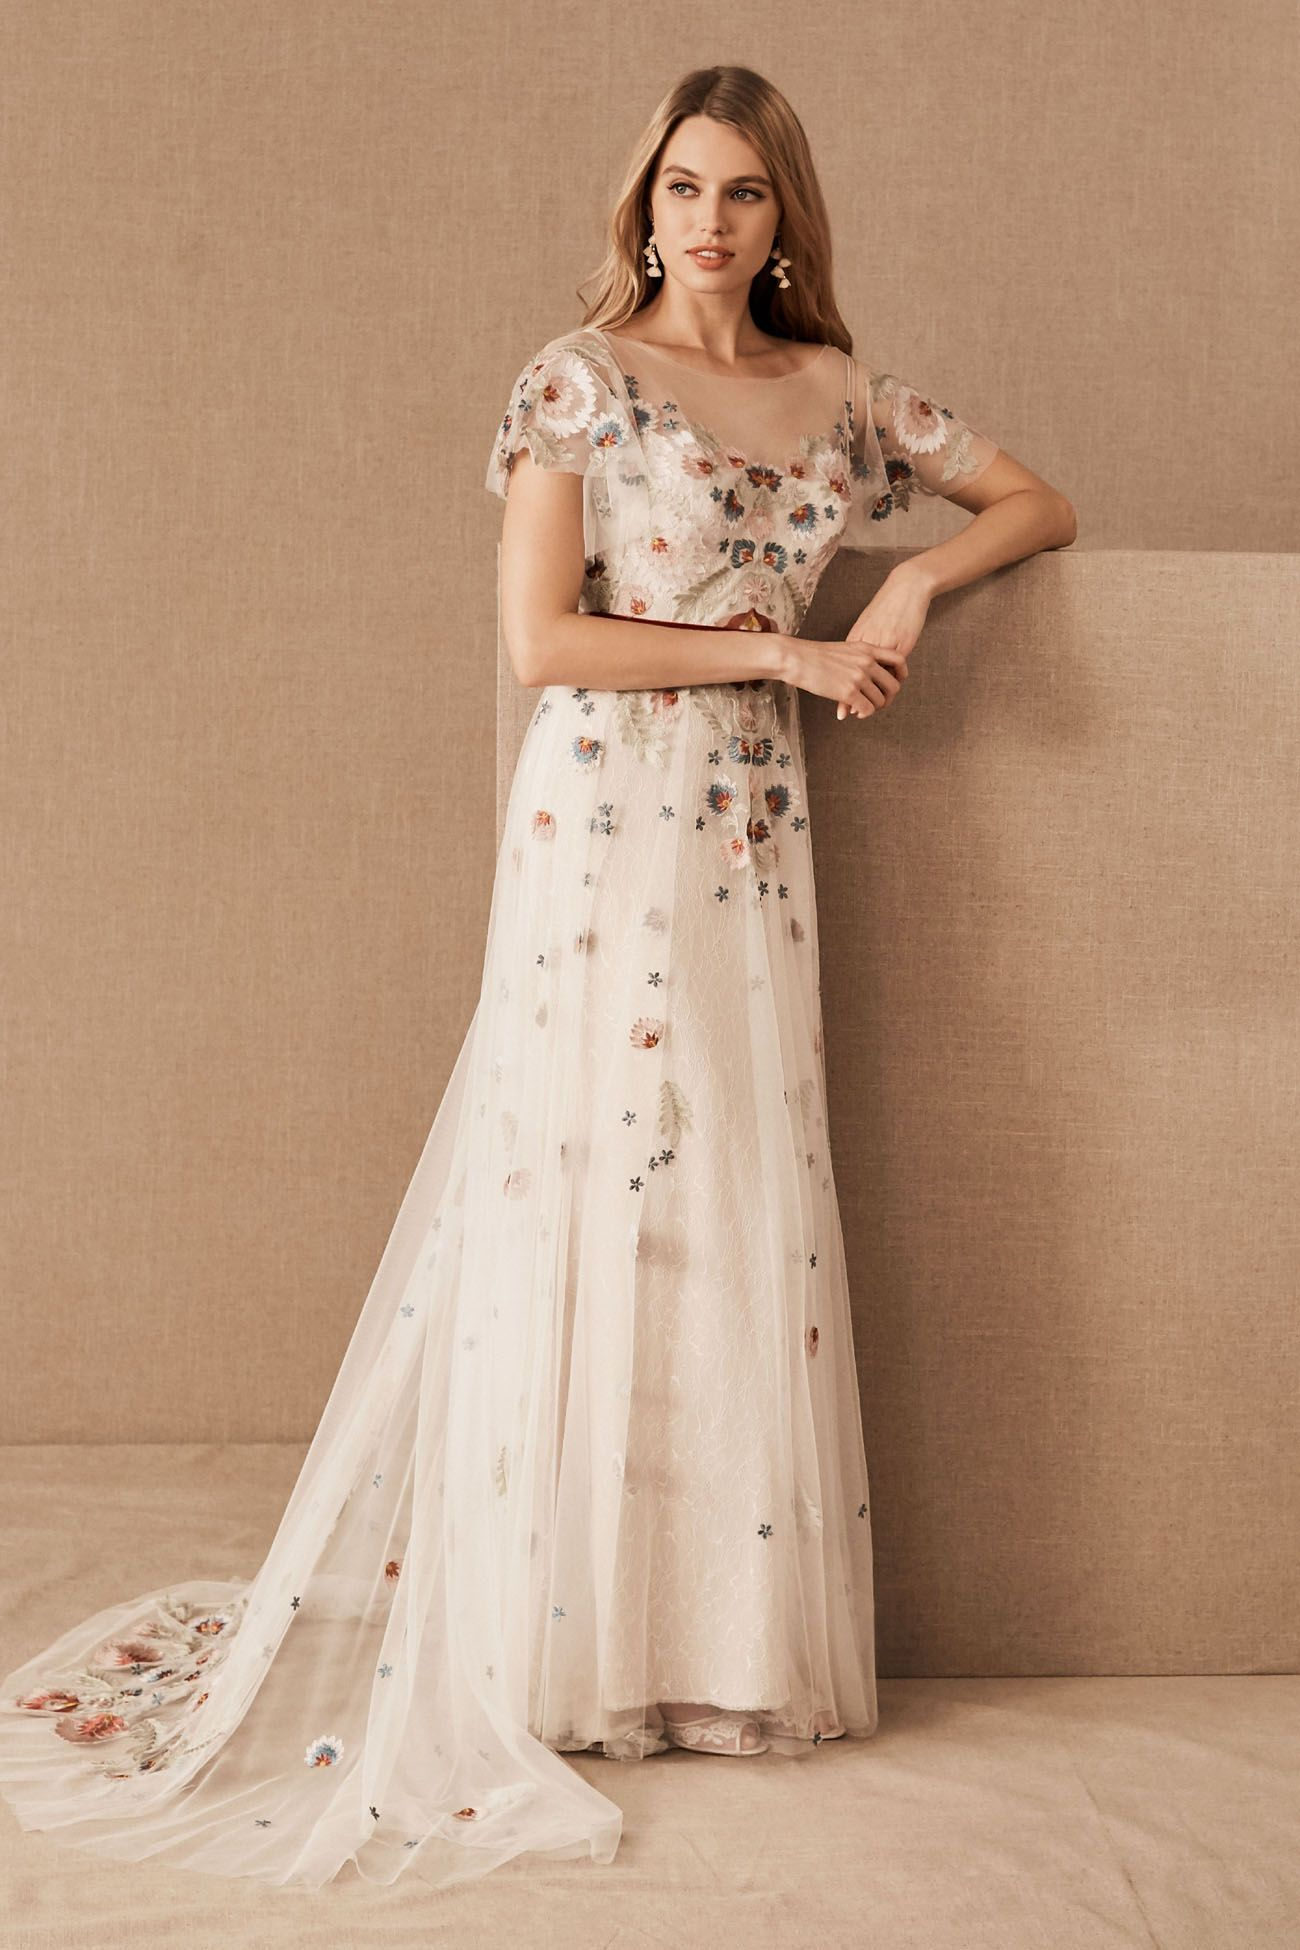 Trending Now The Embroidered Wedding Dress These Colorful Floral Gowns Are Turning Heads Green Wedding Shoes In 2020 Embroidered Wedding Dress Bhldn Wedding Dress Floral Wedding Dress